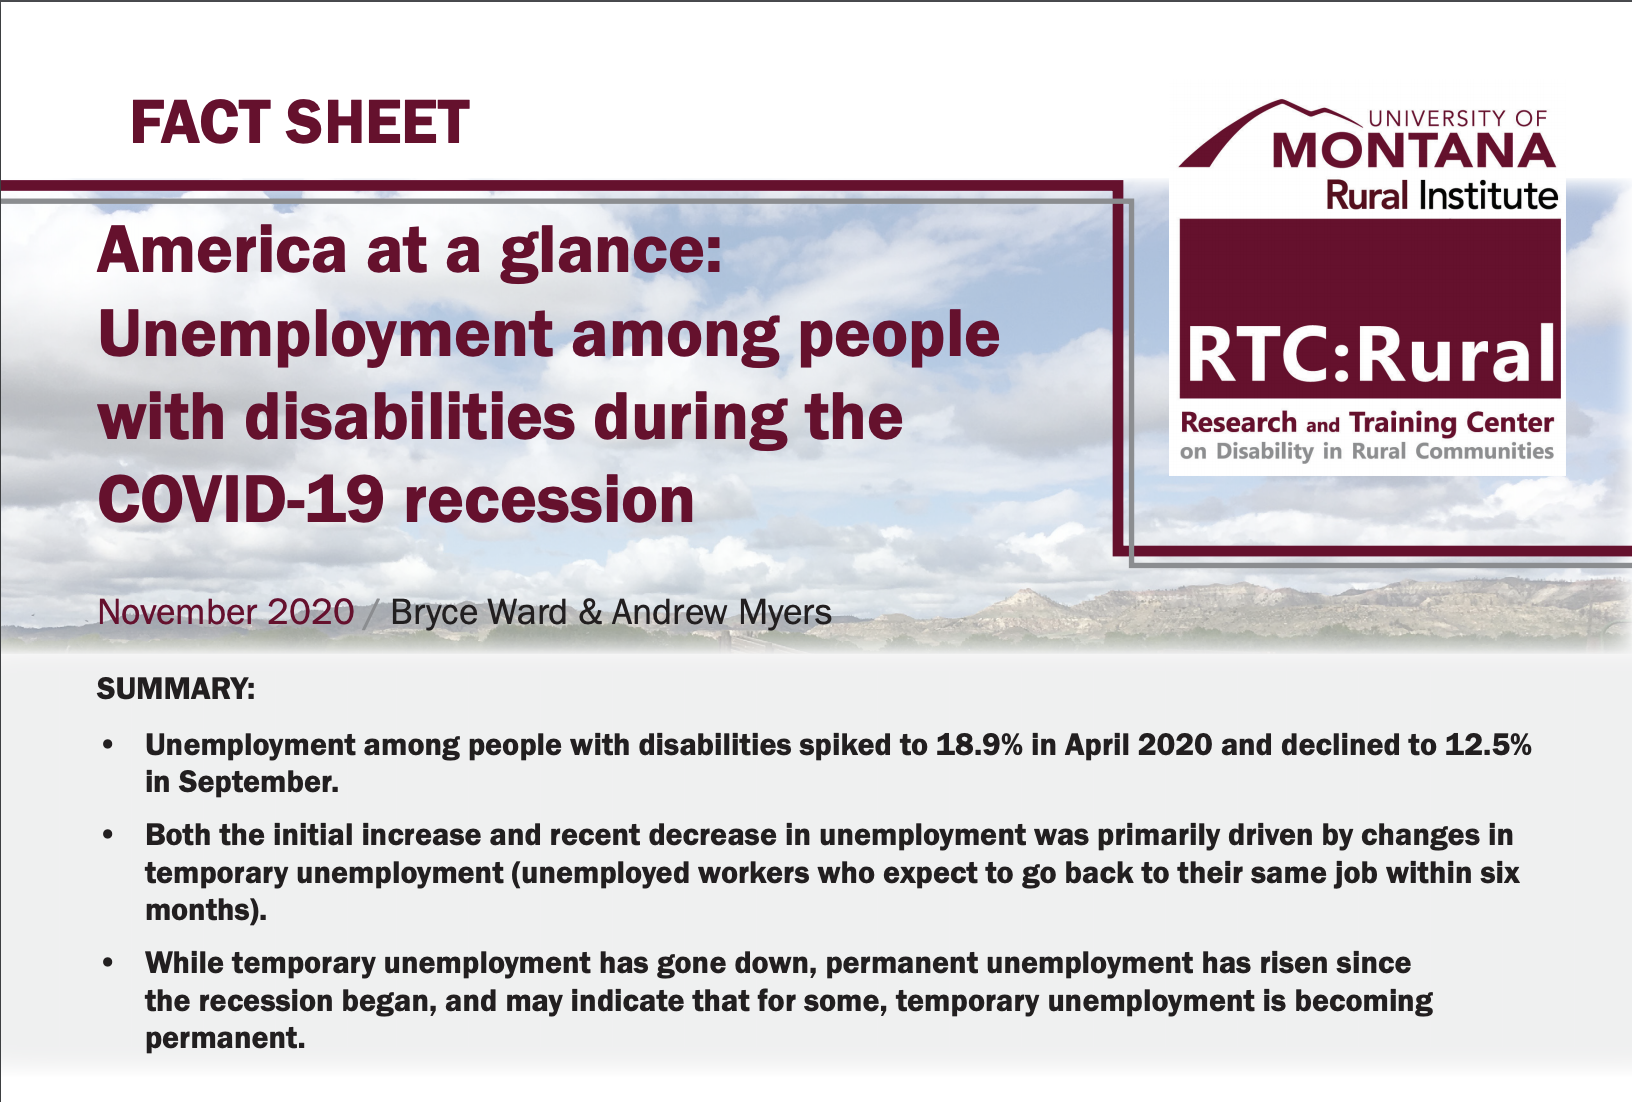 FACT SHEET America at a glance: Unemployment among people with disabilities during the COVID-19 recession